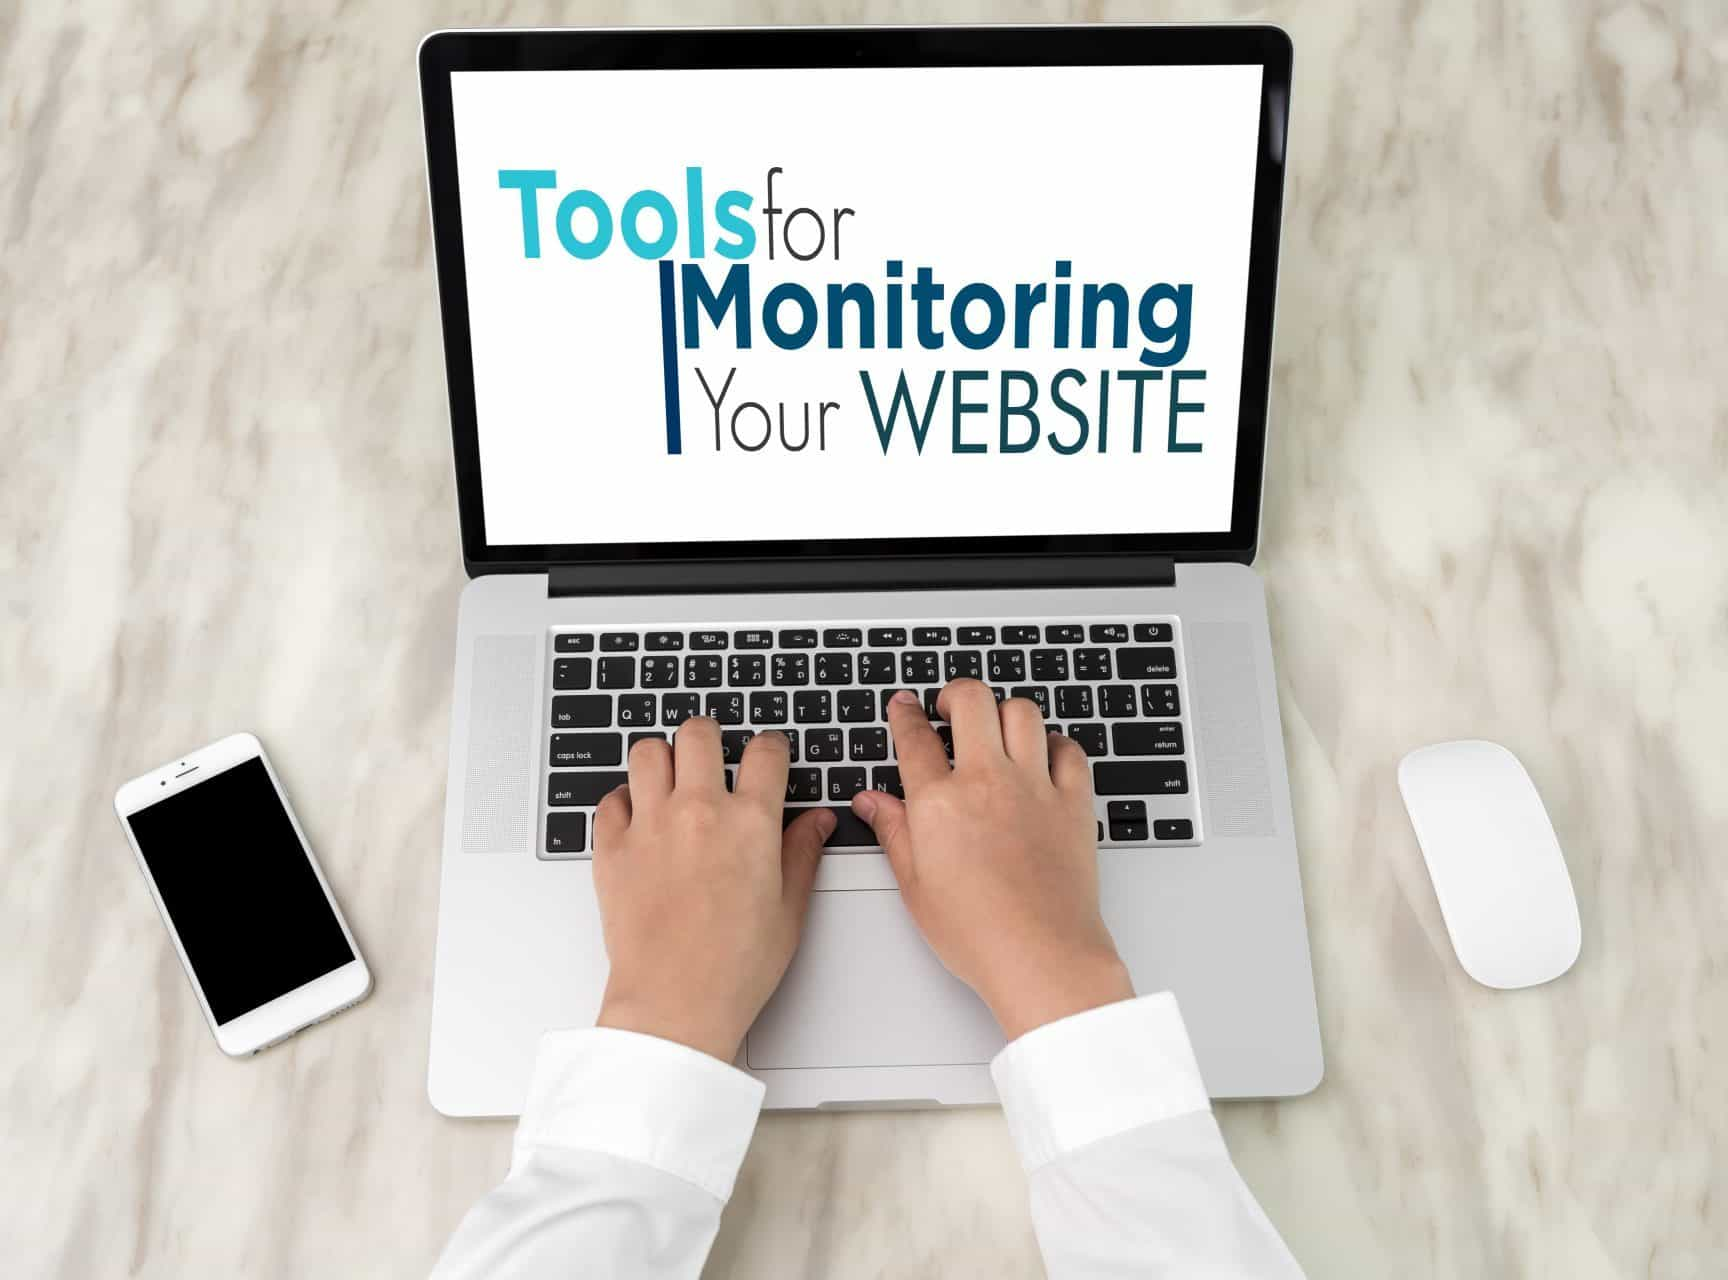 tools for monitoring your website